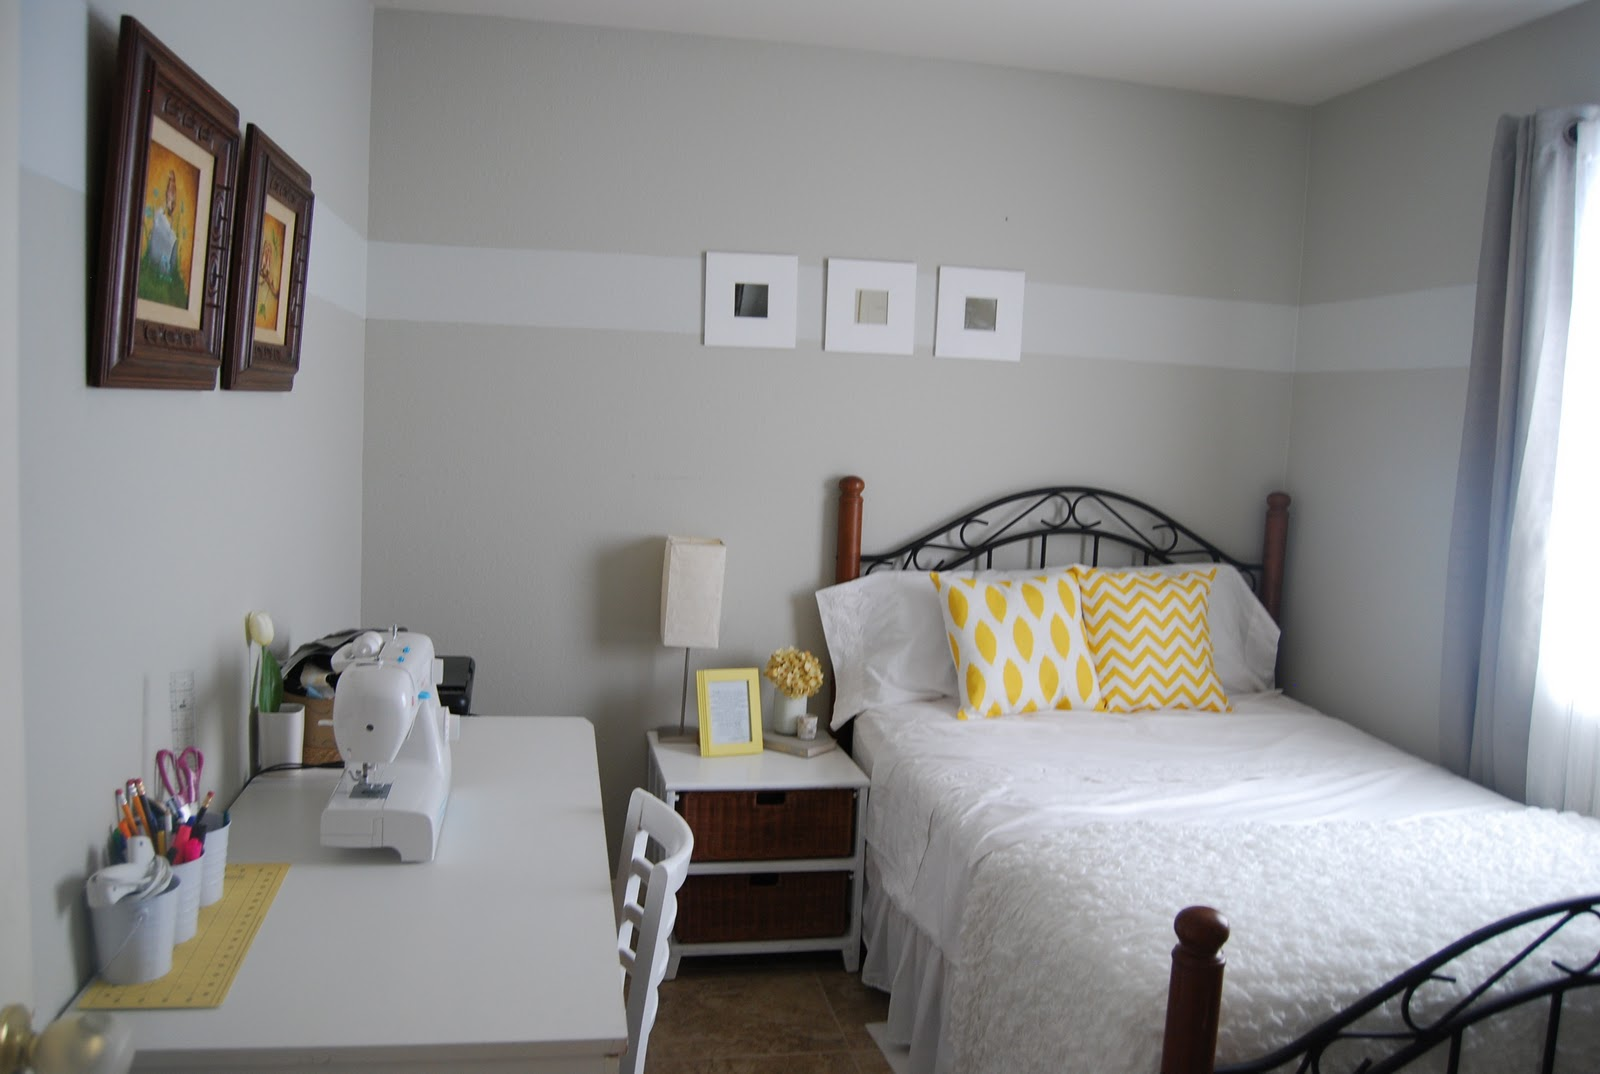 Cinsarah Guest Room Craft Room Reveal